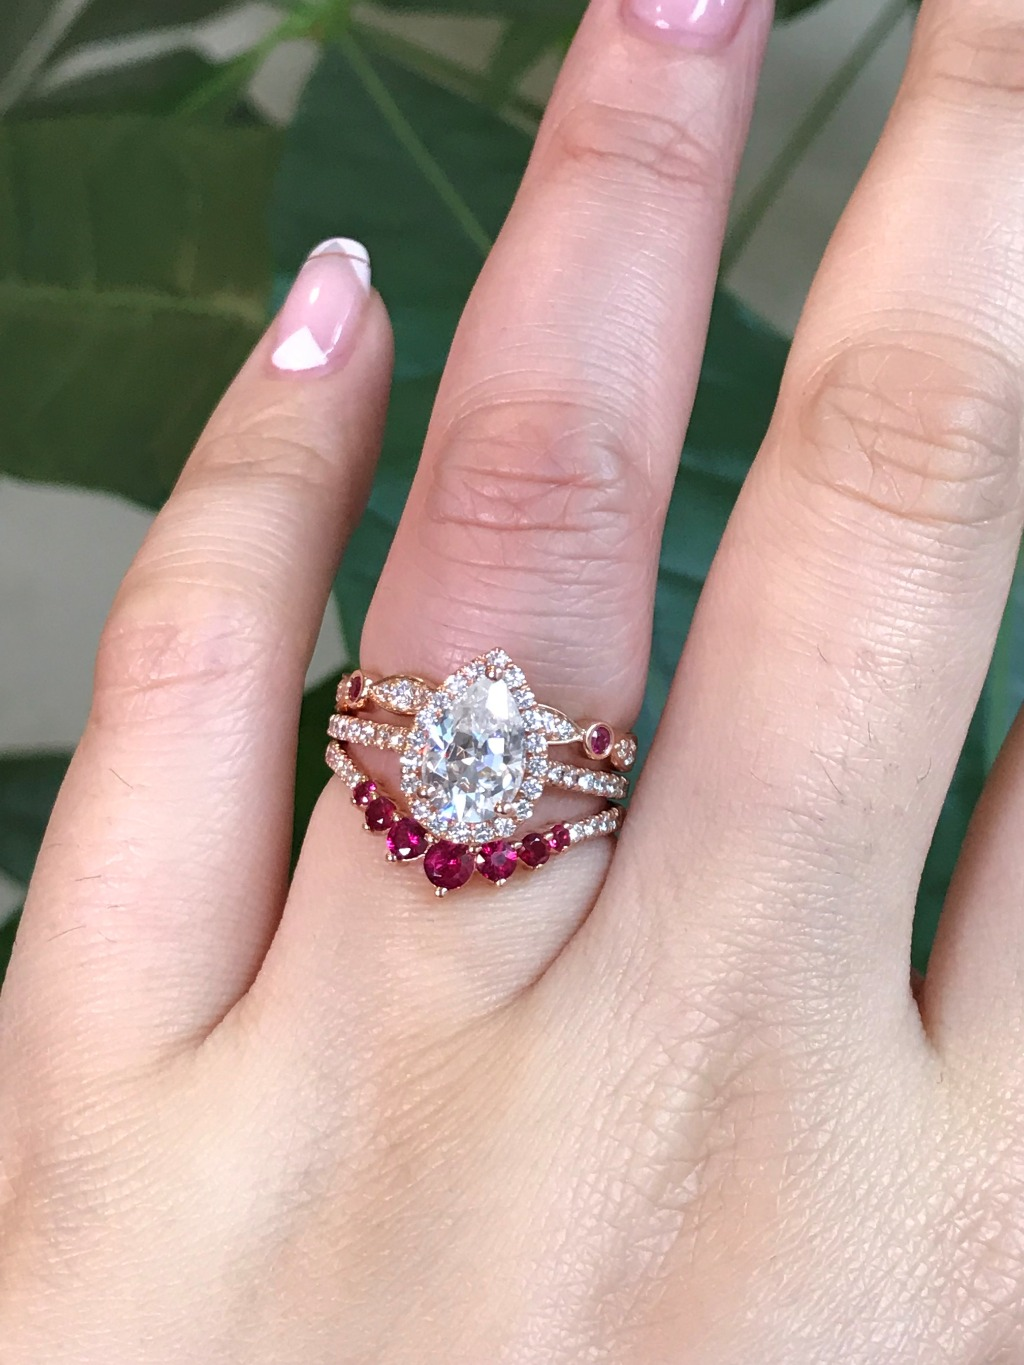 Add colored accents to your bridal ring set by shopping weddings rings by La More Design! Here we stacked a Pear Moissanite Ring in